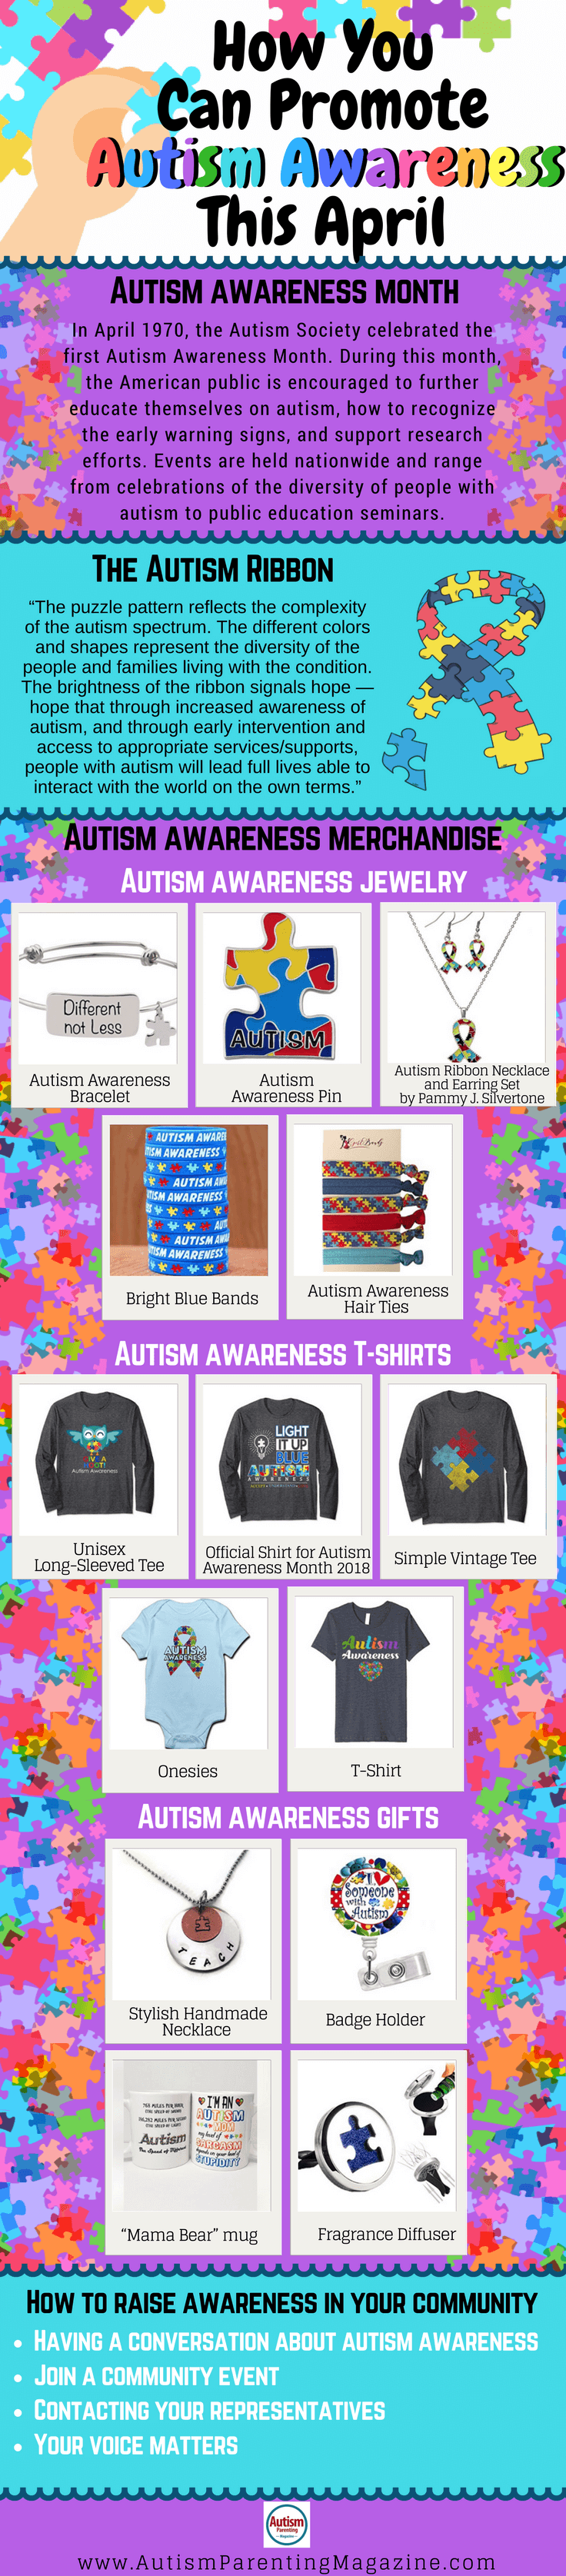 How You Can Promote Autism Awareness This April-infographic-plaza